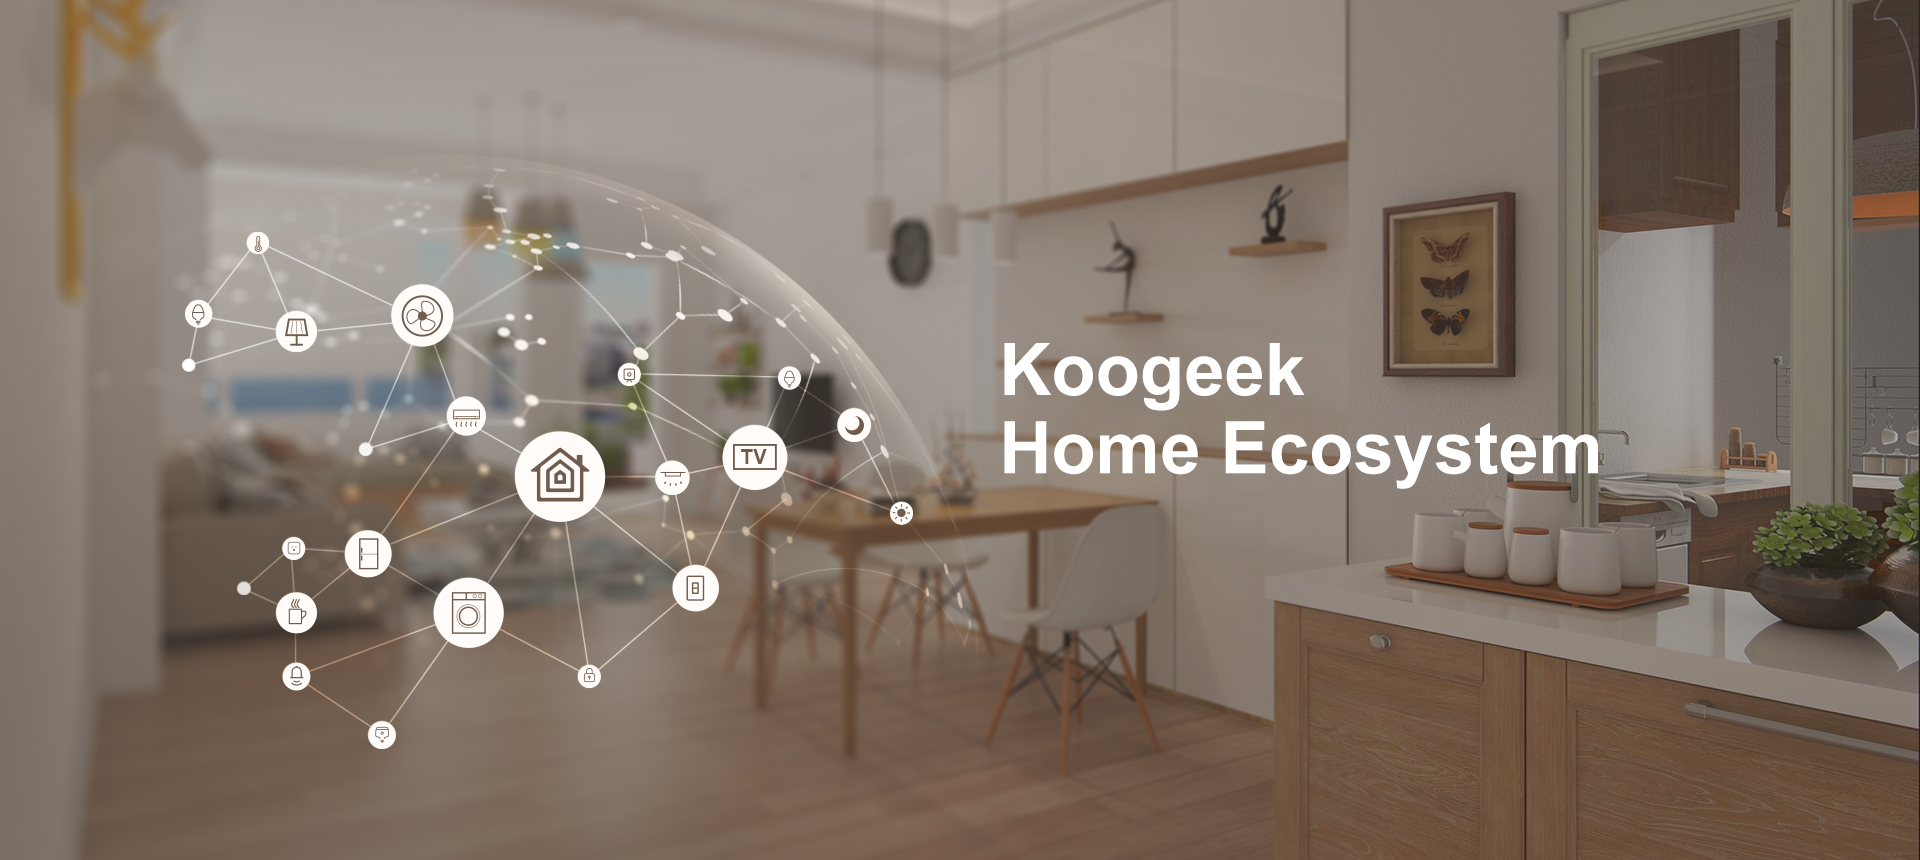 How To Use Remote Start >> Koogeek Smart Home Ecosystem